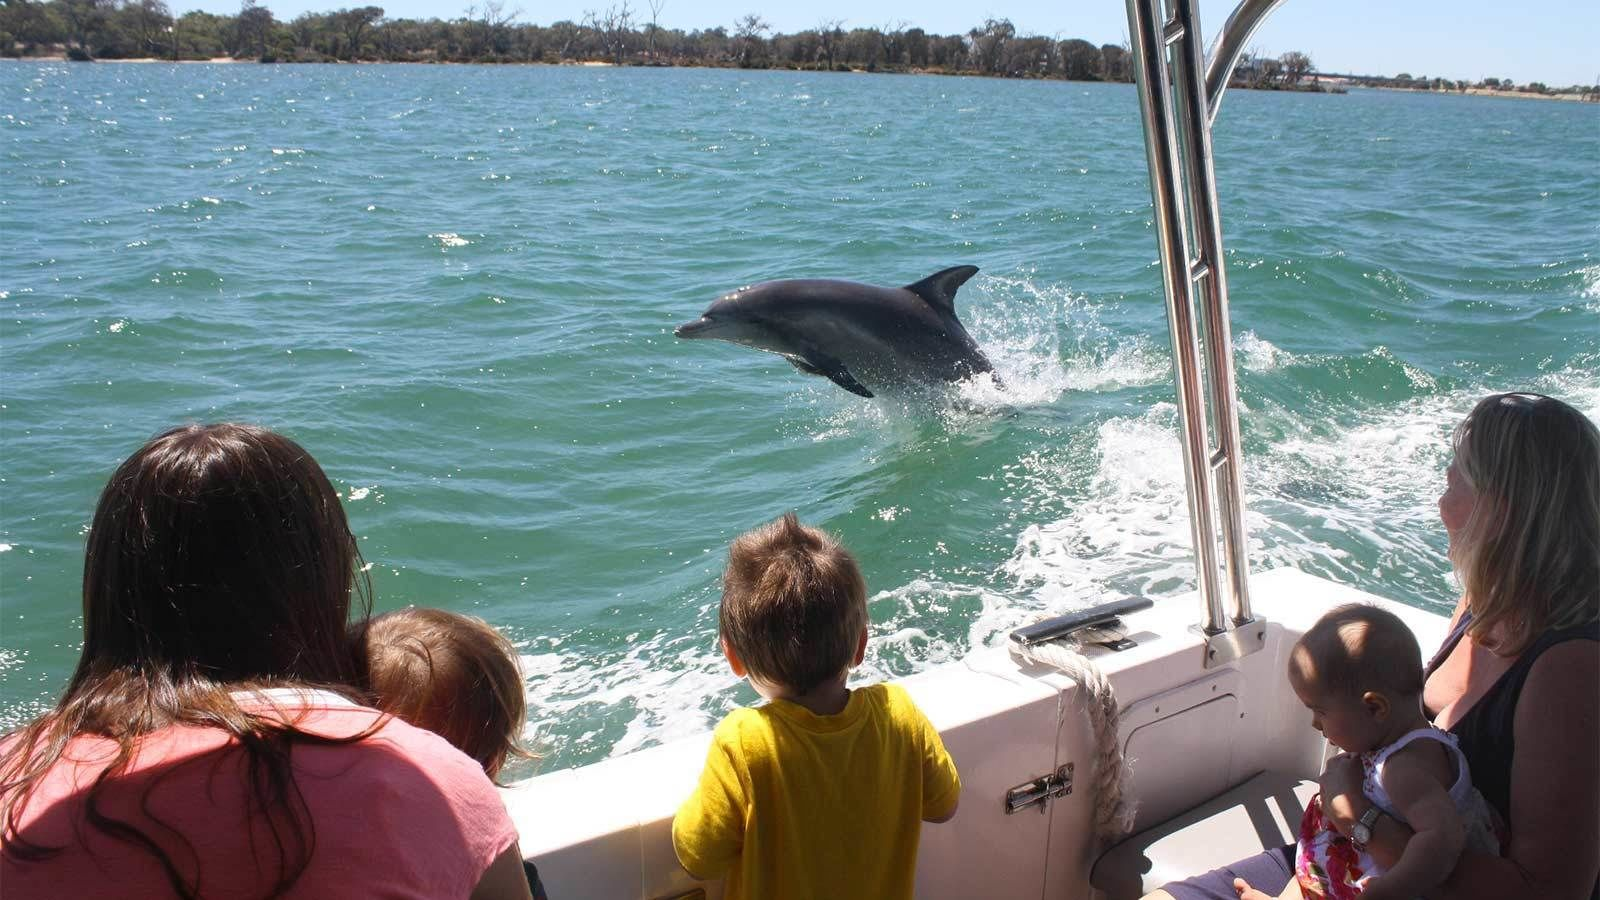 View from onboard a cruise boat looking at the dolphins in Perth, Australia